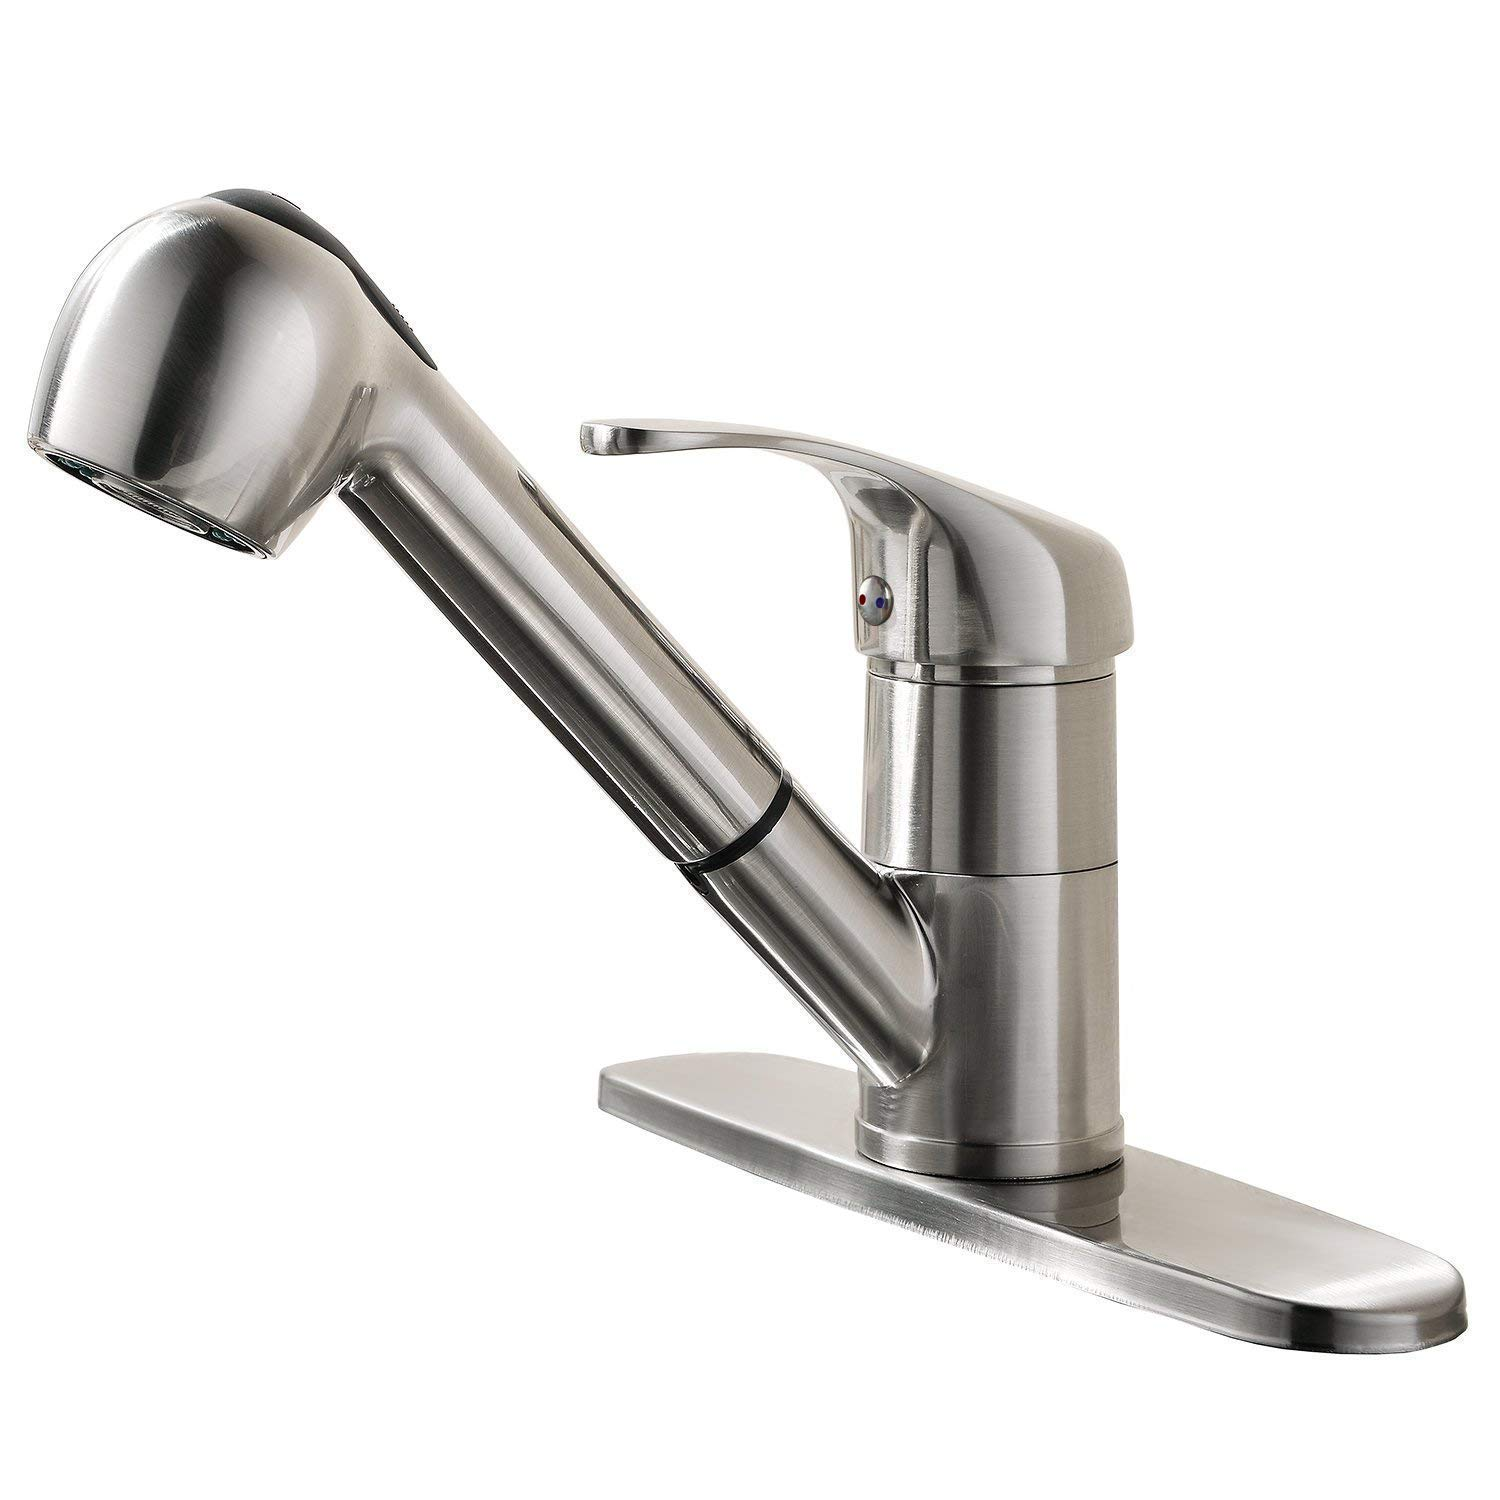 Gooao Modern Brushed Nickel Single Handle Stainless Steel Pull Out